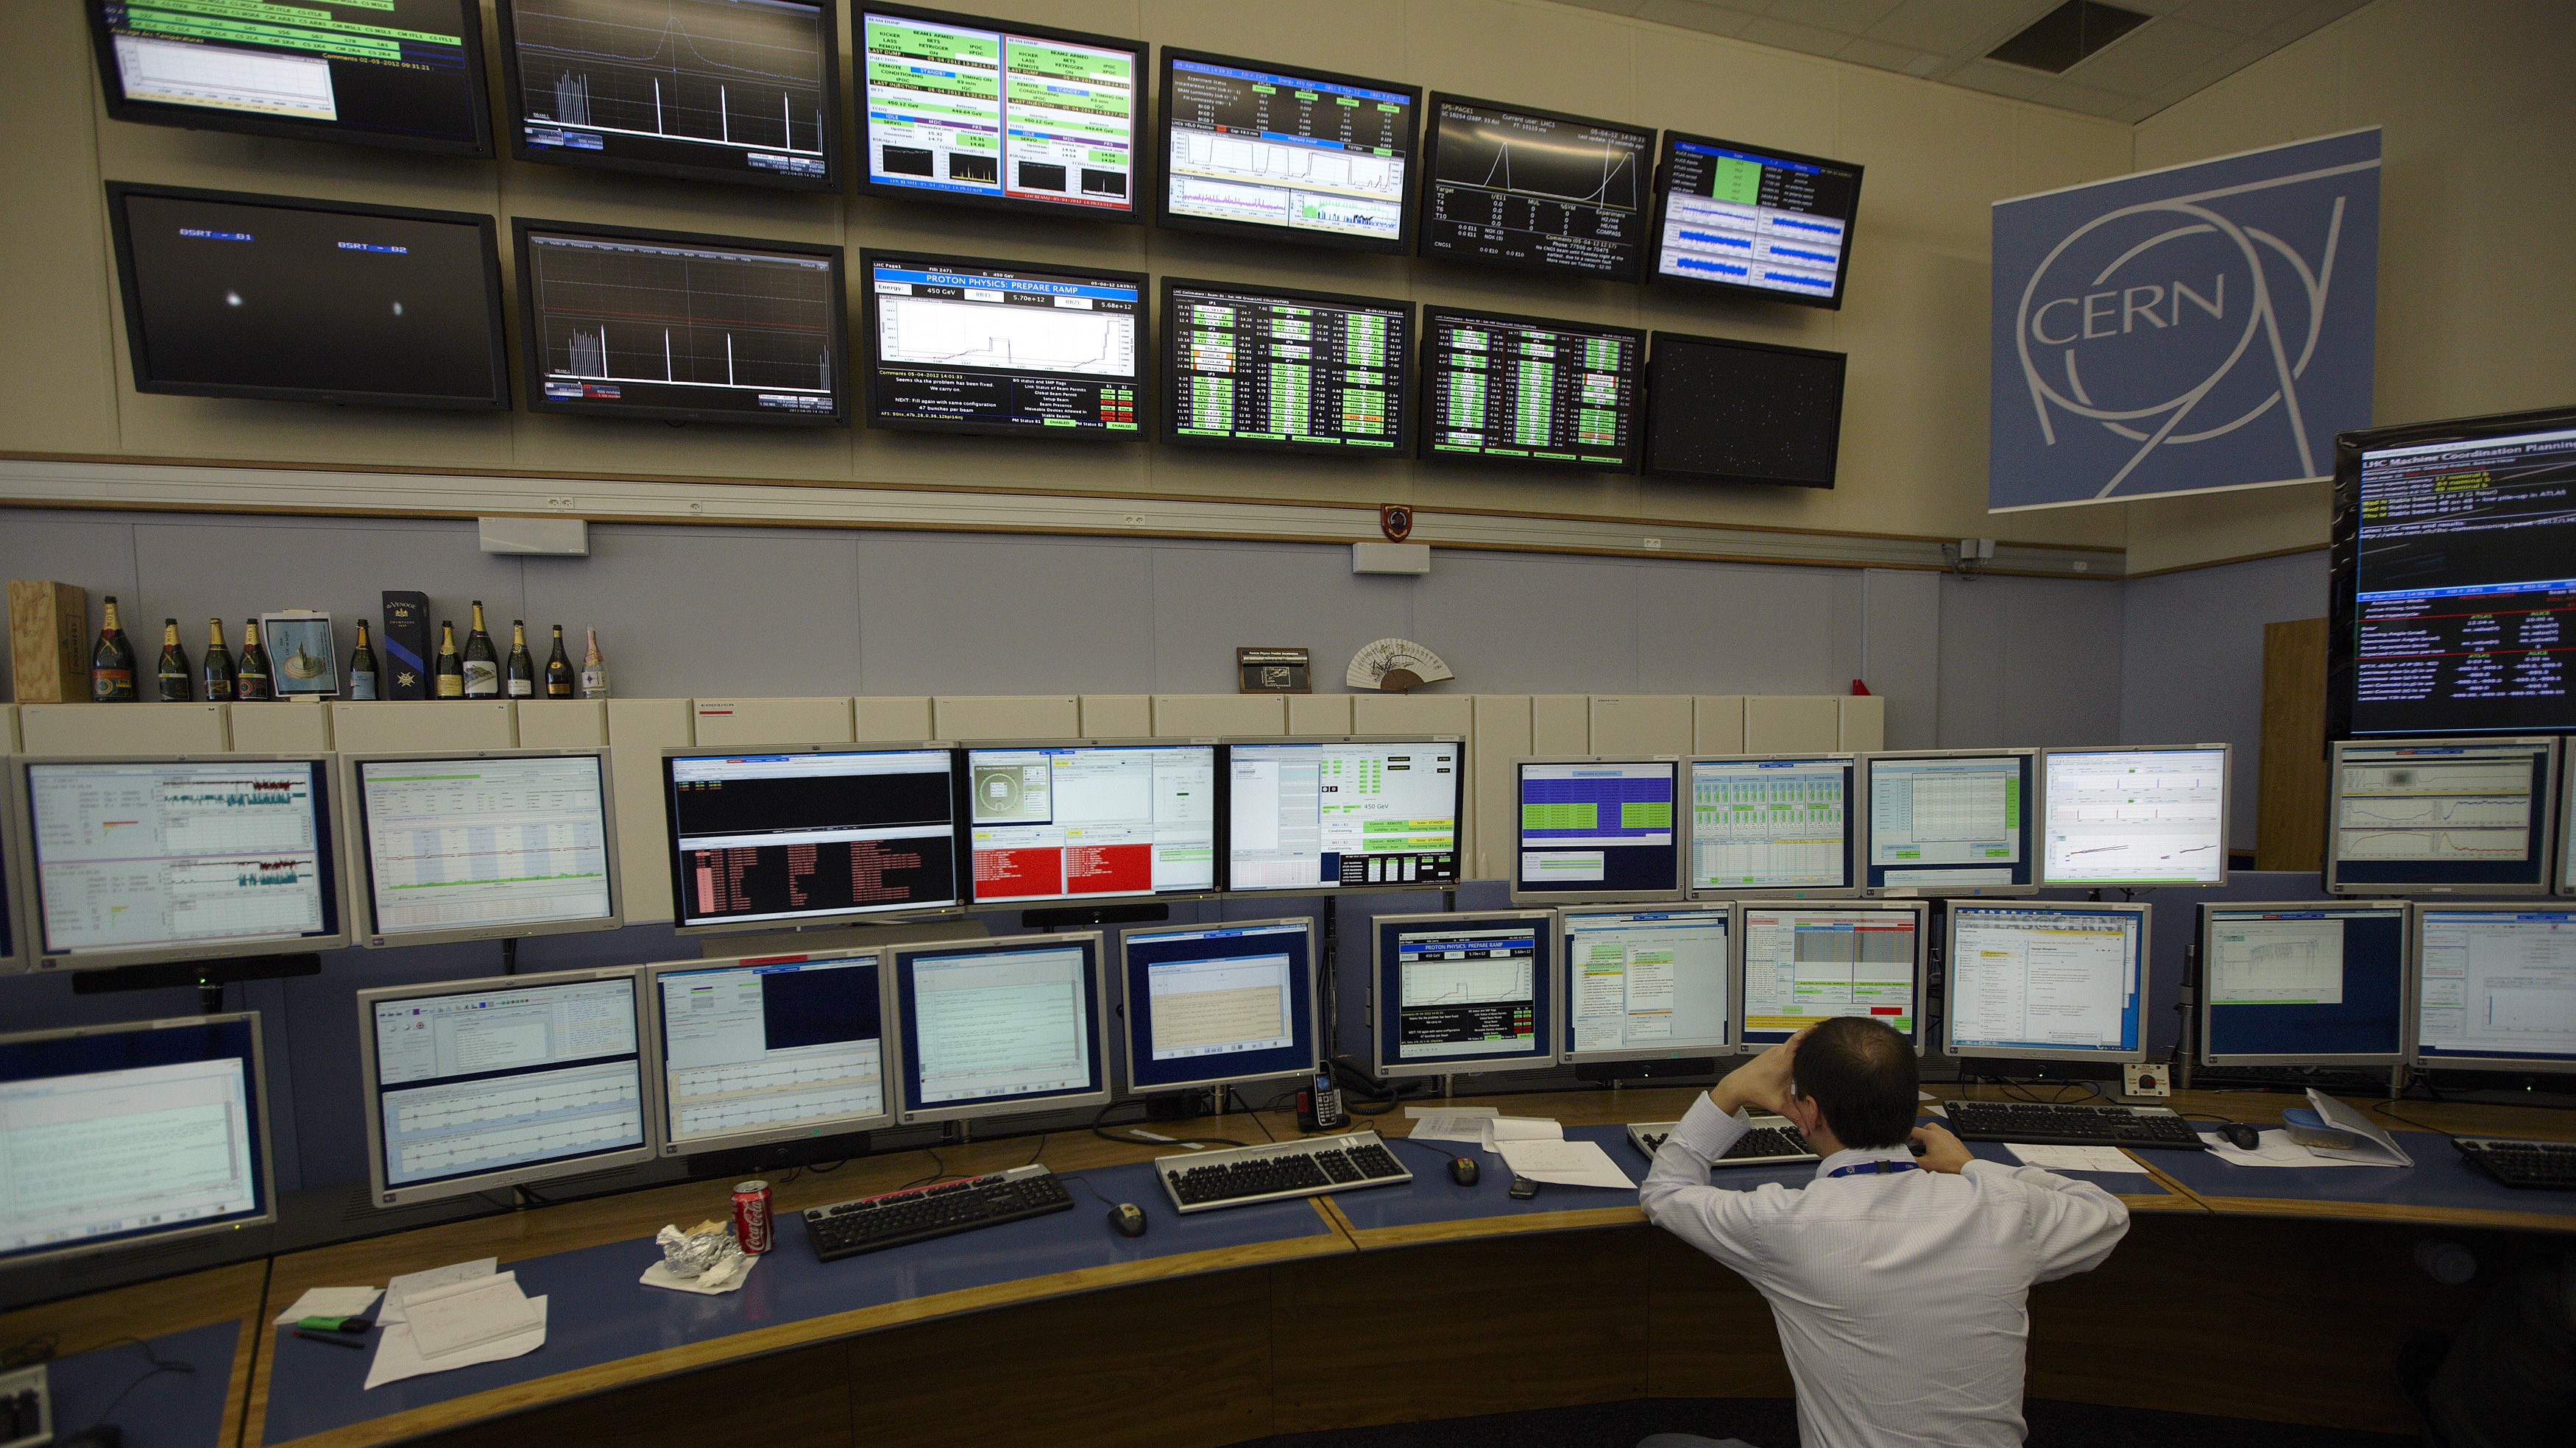 "A technician looks at computer screens during the preparation of the beam in the Control Room of the Large Hadron Collider (LHC) at the European Organisation for Nuclear Research (CERN) near Geneva April 5, 2012. At 0:38 CEST this morning, the LHC shift crew declared ""stable beams"" as two 4 TeV proton beams were brought into collision at the LHC's four interaction points. The collision energy of 8 TeV is a new world record, and increases the machine's discovery potential considerably."